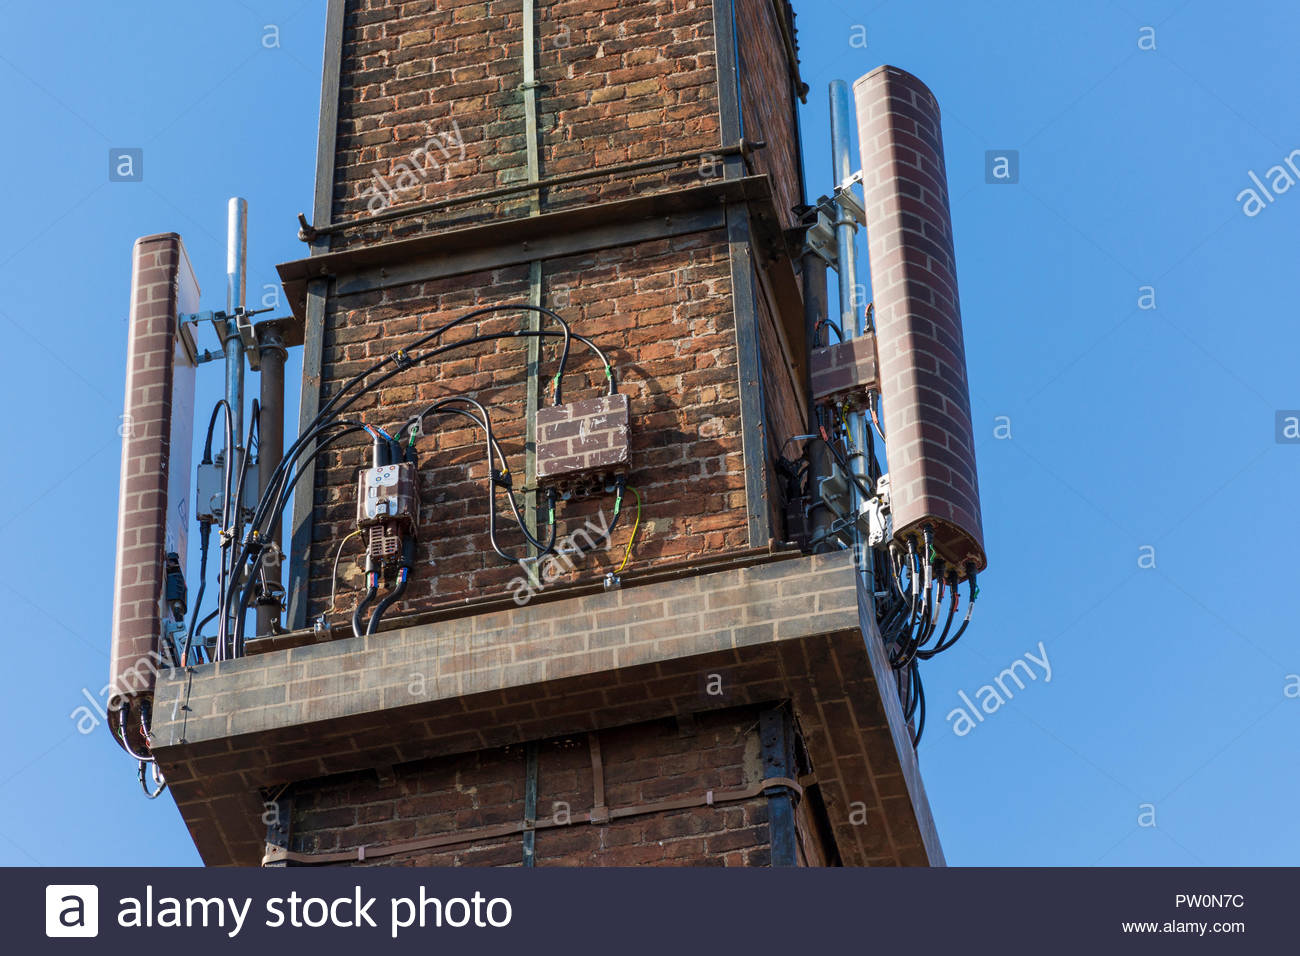 Mobile phone antennae on old industrial buildings on the Old Tannery Site in Holt, Wiltshire, previously connected with glove making in the area. - Stock Image